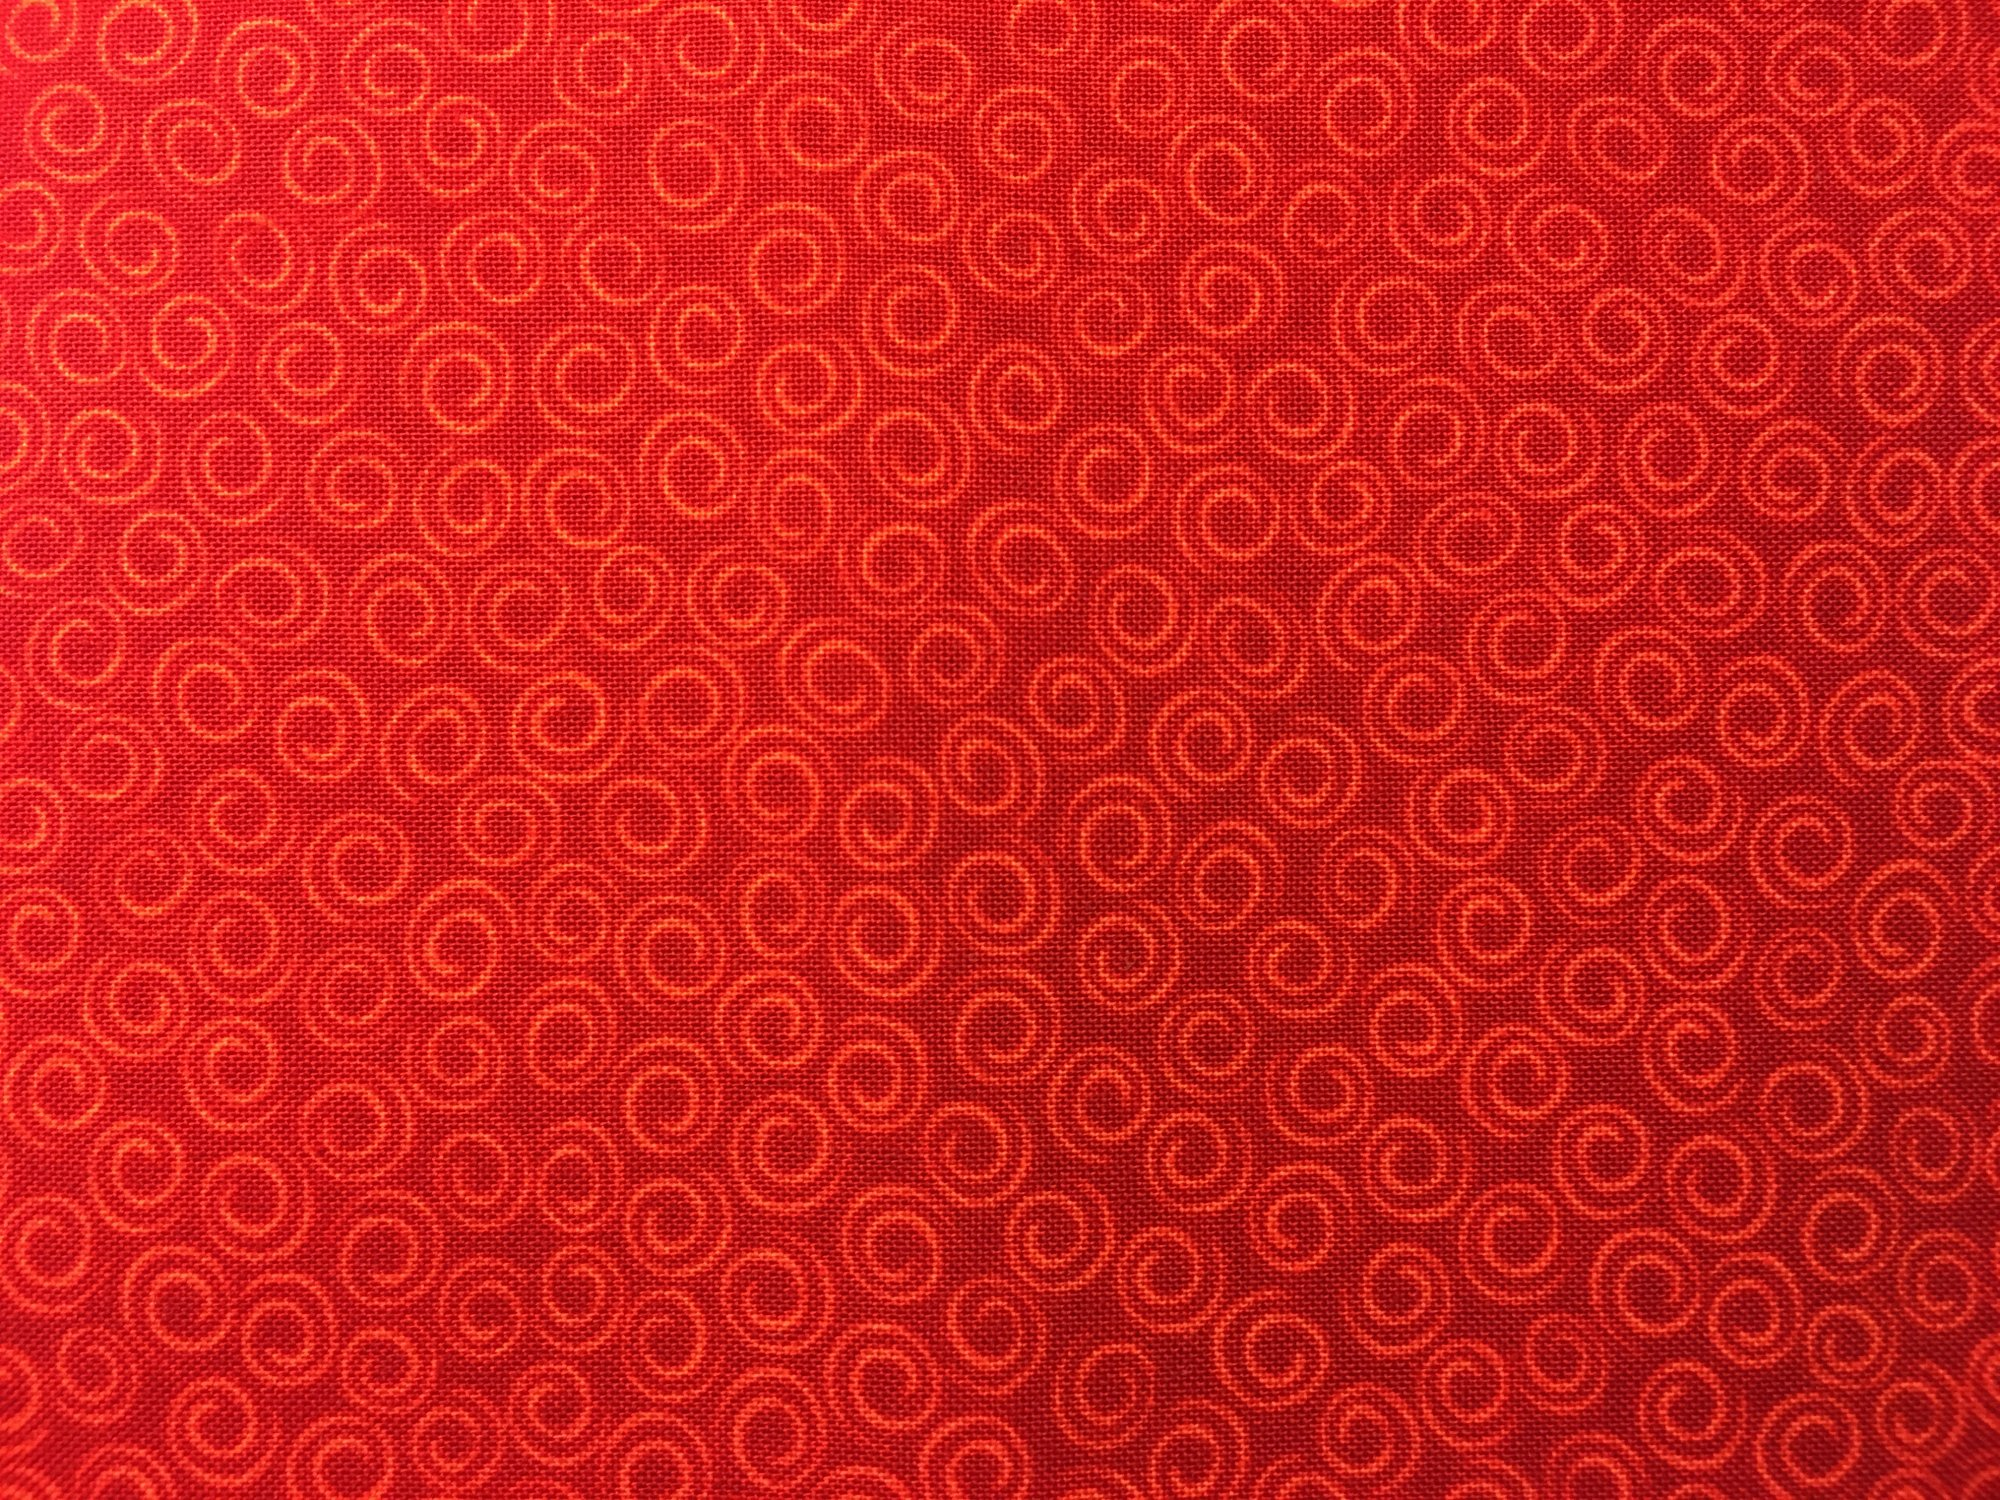 Blank Textiles Hoot Loves You BTR6922 red